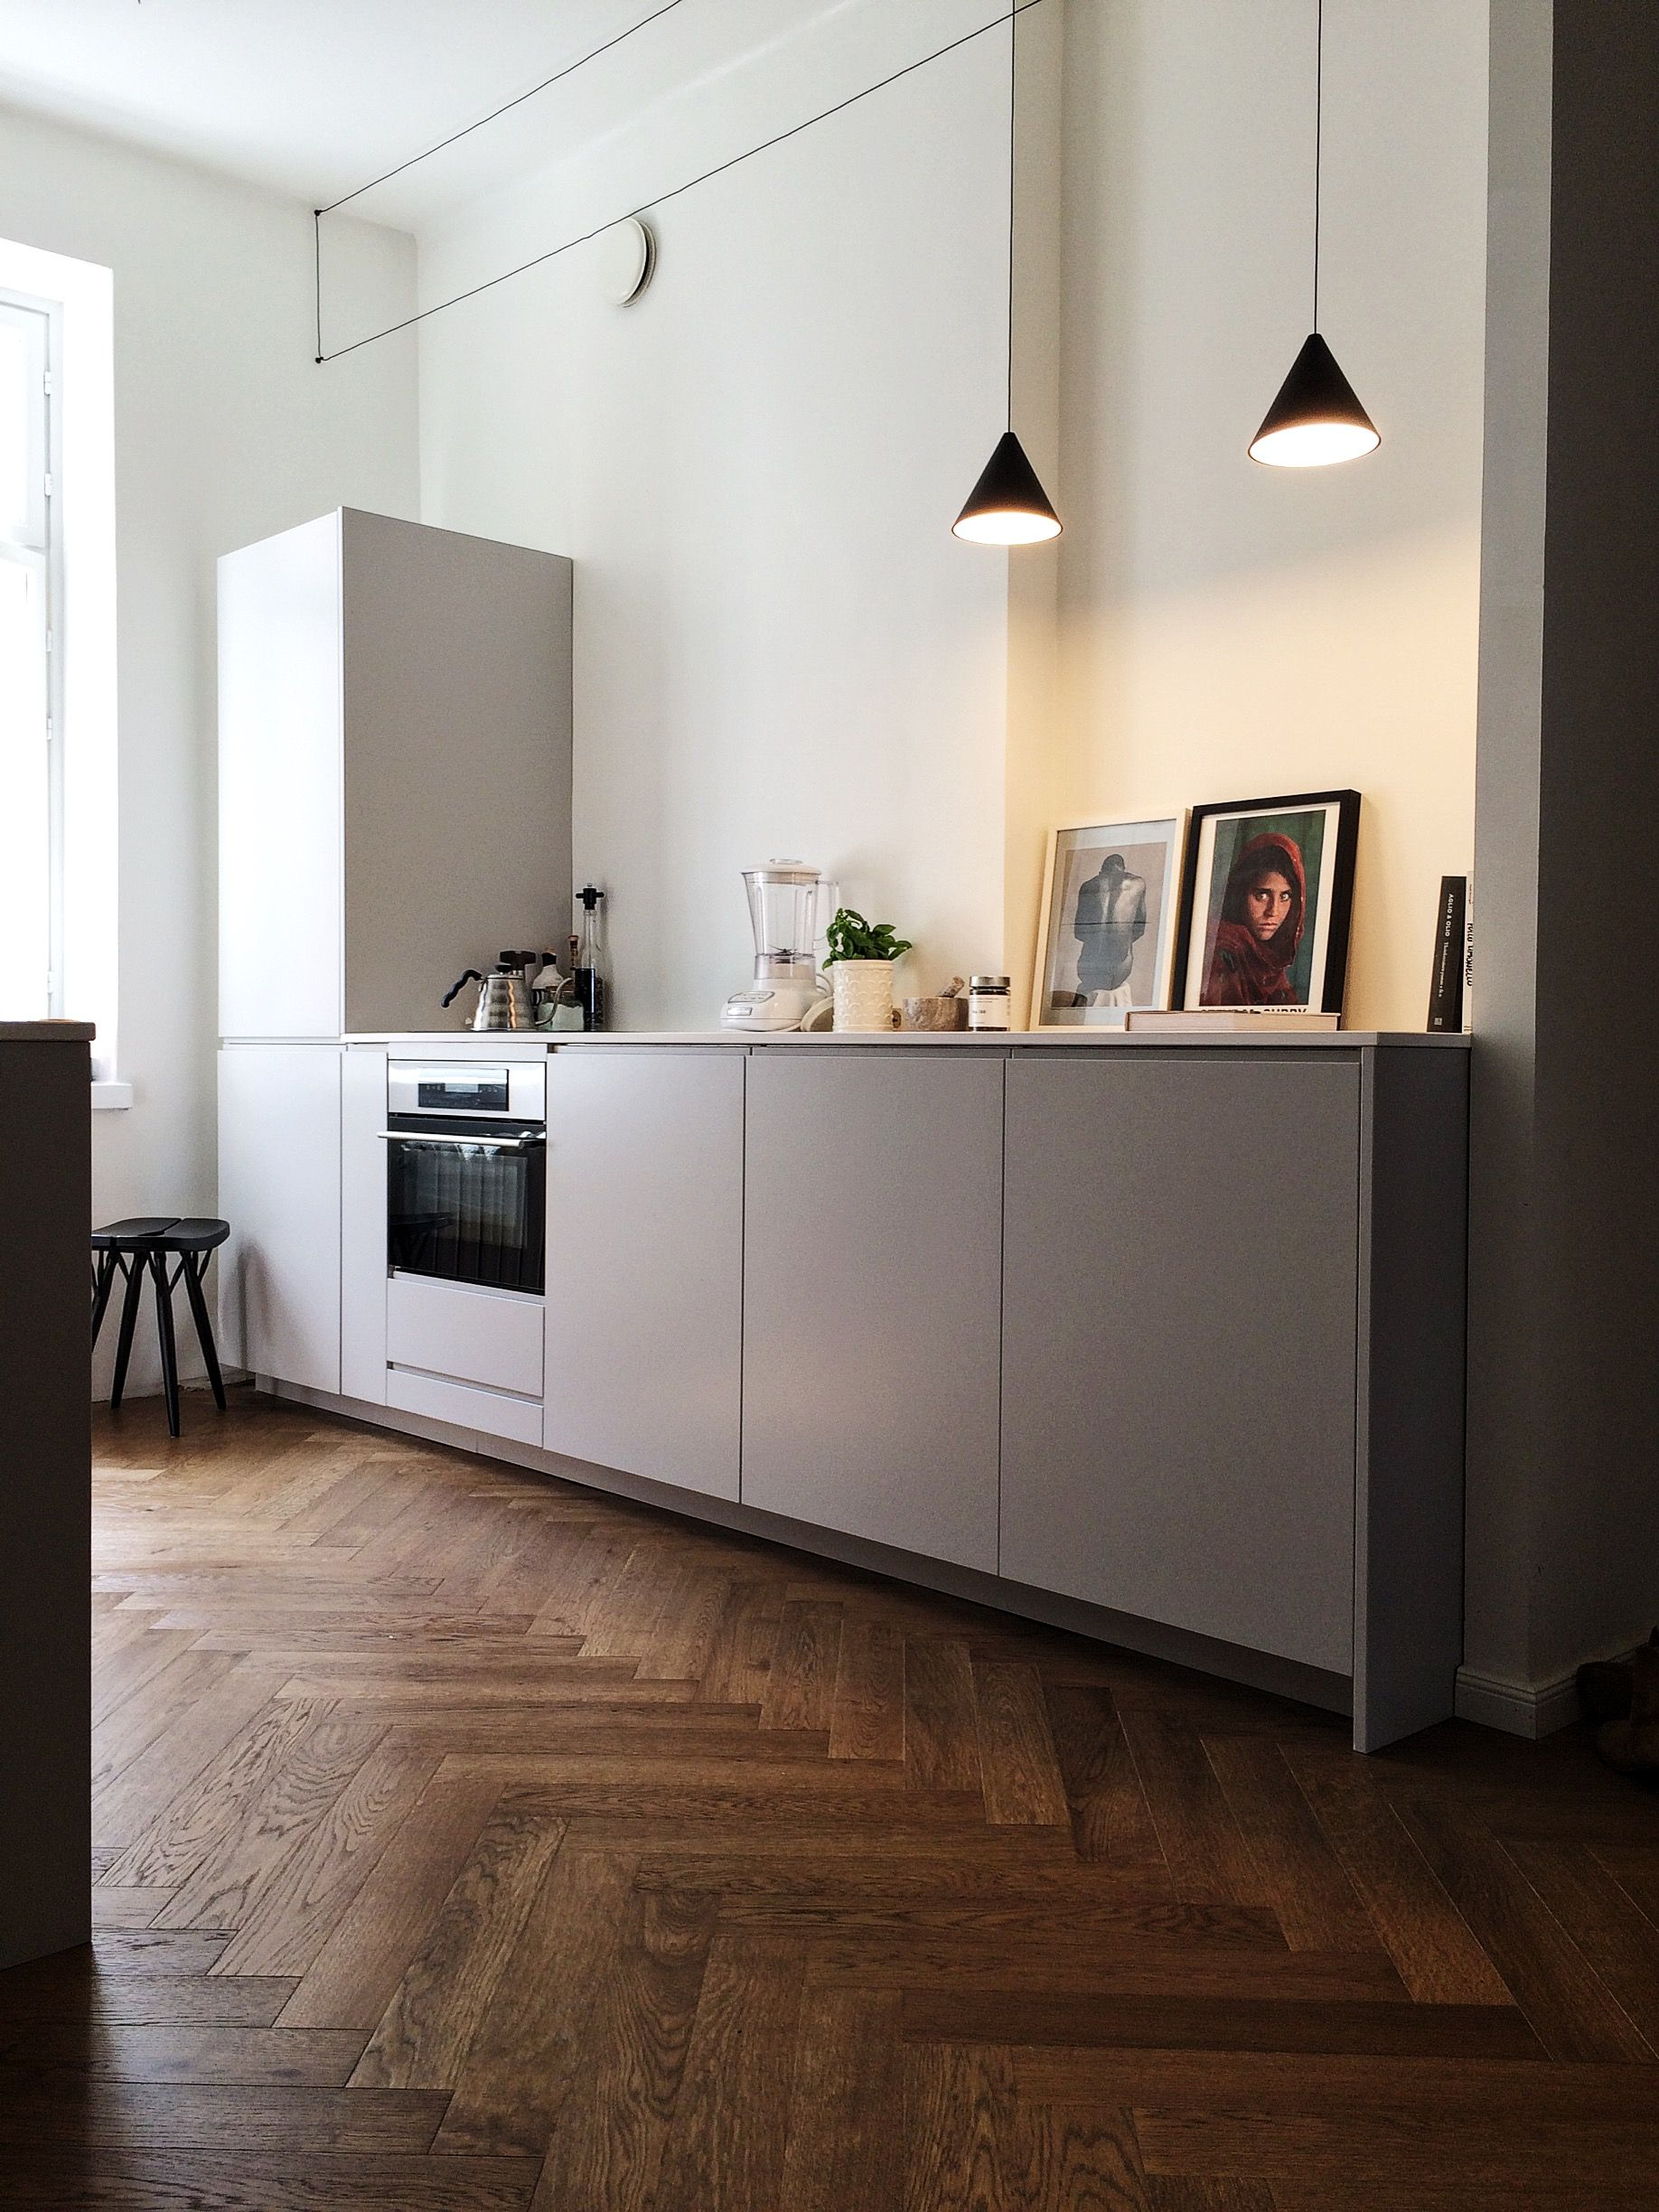 Modern Kitchen Floor sleek modern kitchen, herringbone wood floor | kitchen | pinterest